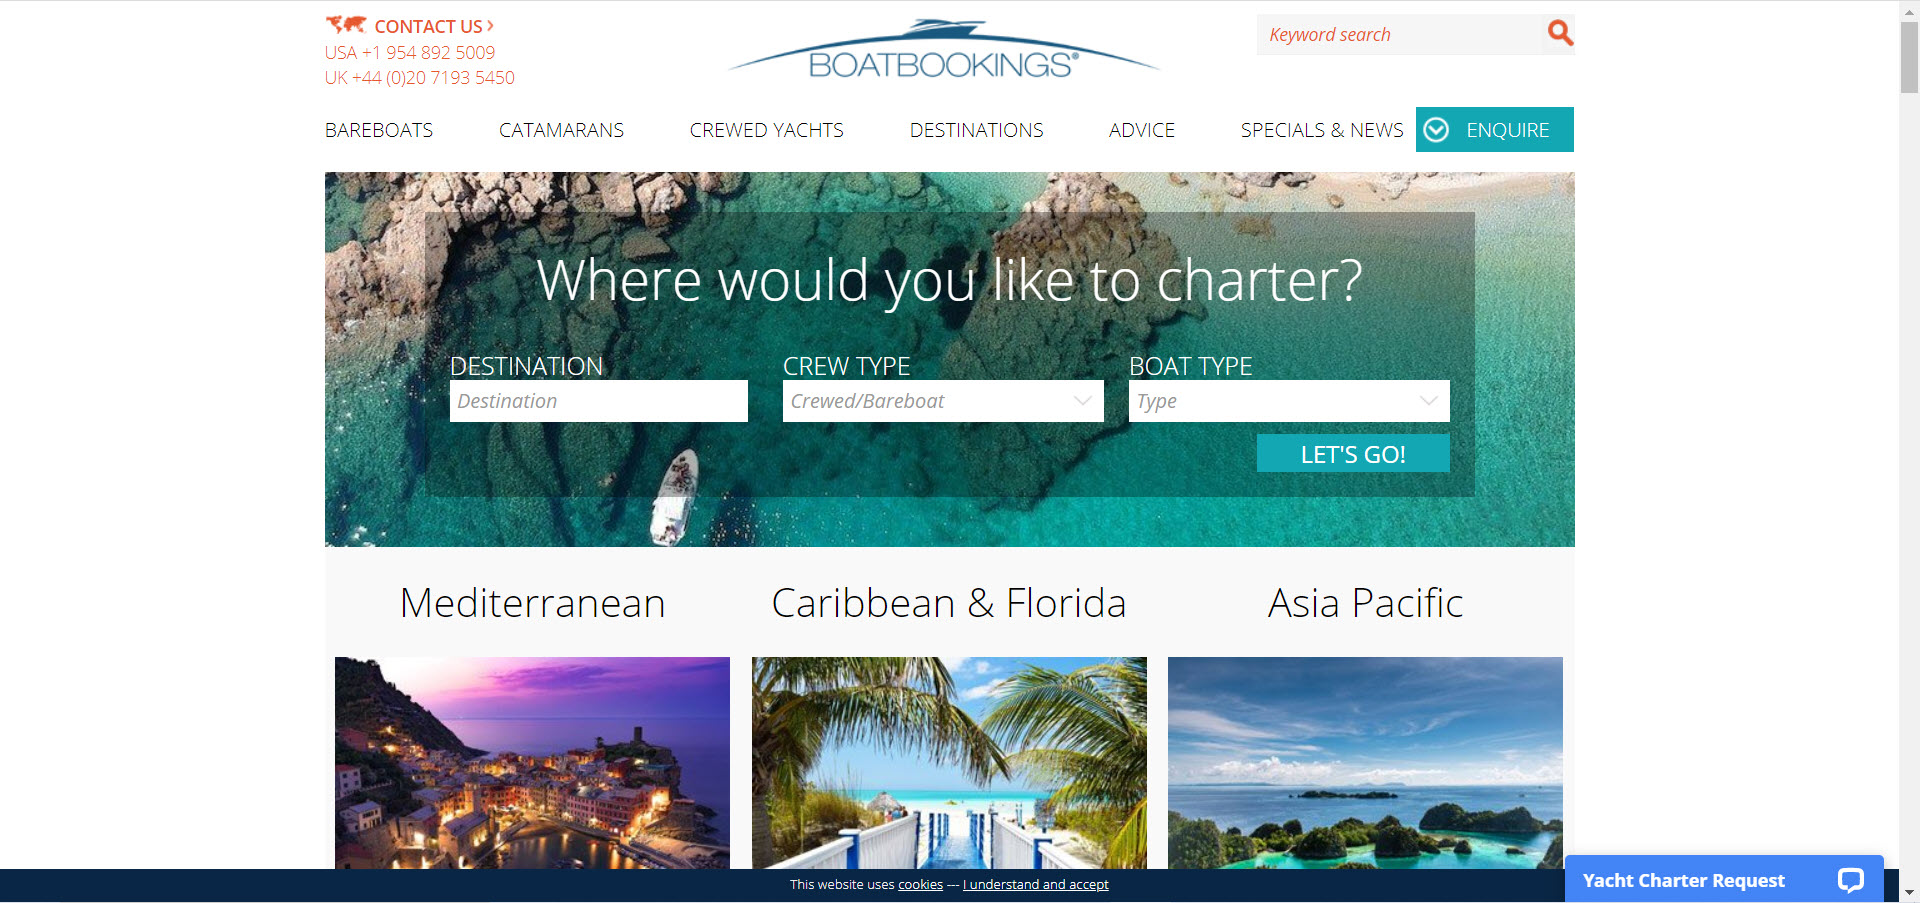 Boat Affiliate Programs - Boat bookings